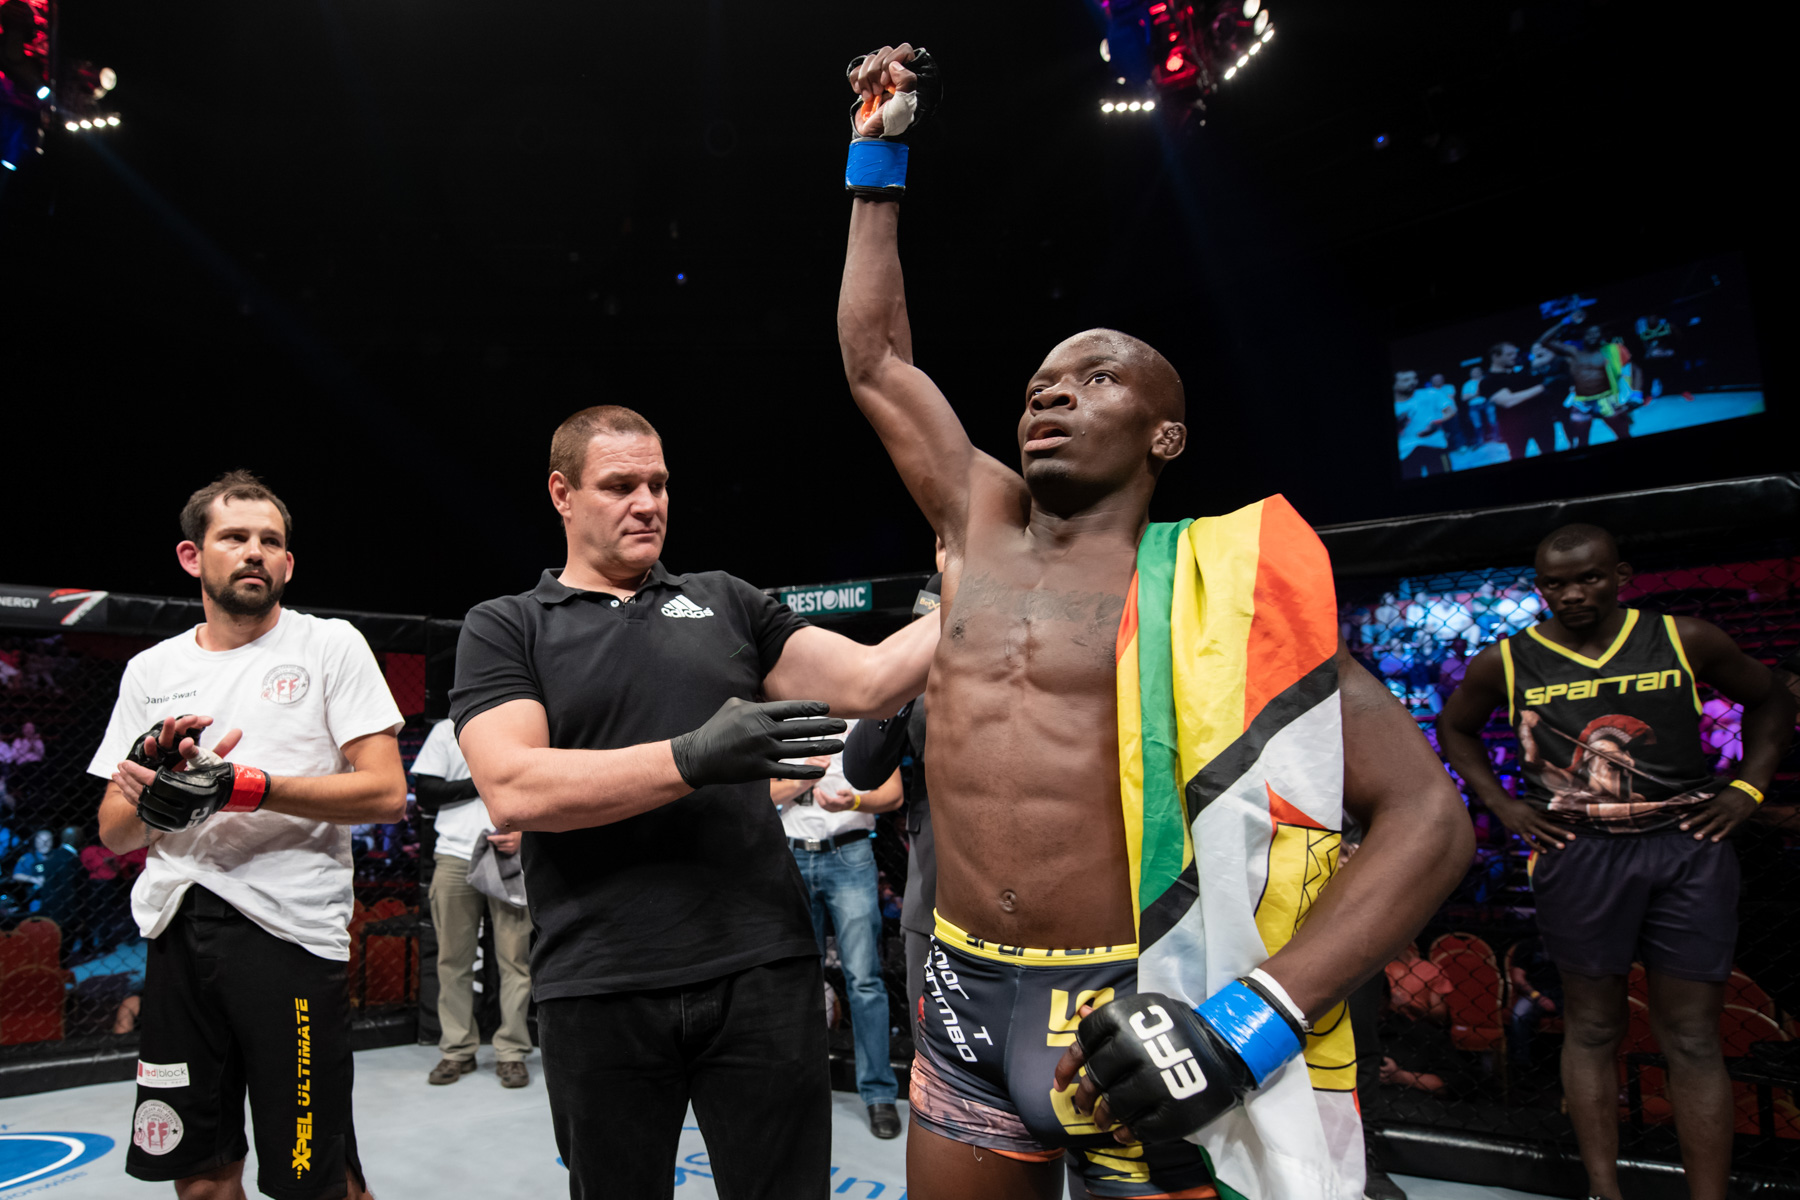 6 October 2018: Far right, Themba Gorimbo looks on as his brother Takunda Gorimbo celebrates defeating Danie Swart in the Fight Night for EFC 74 matchup at Carnival City in Johannesburg. (Photograph by Anton Geyser/ EFC Worldwide/ Gallo Images)